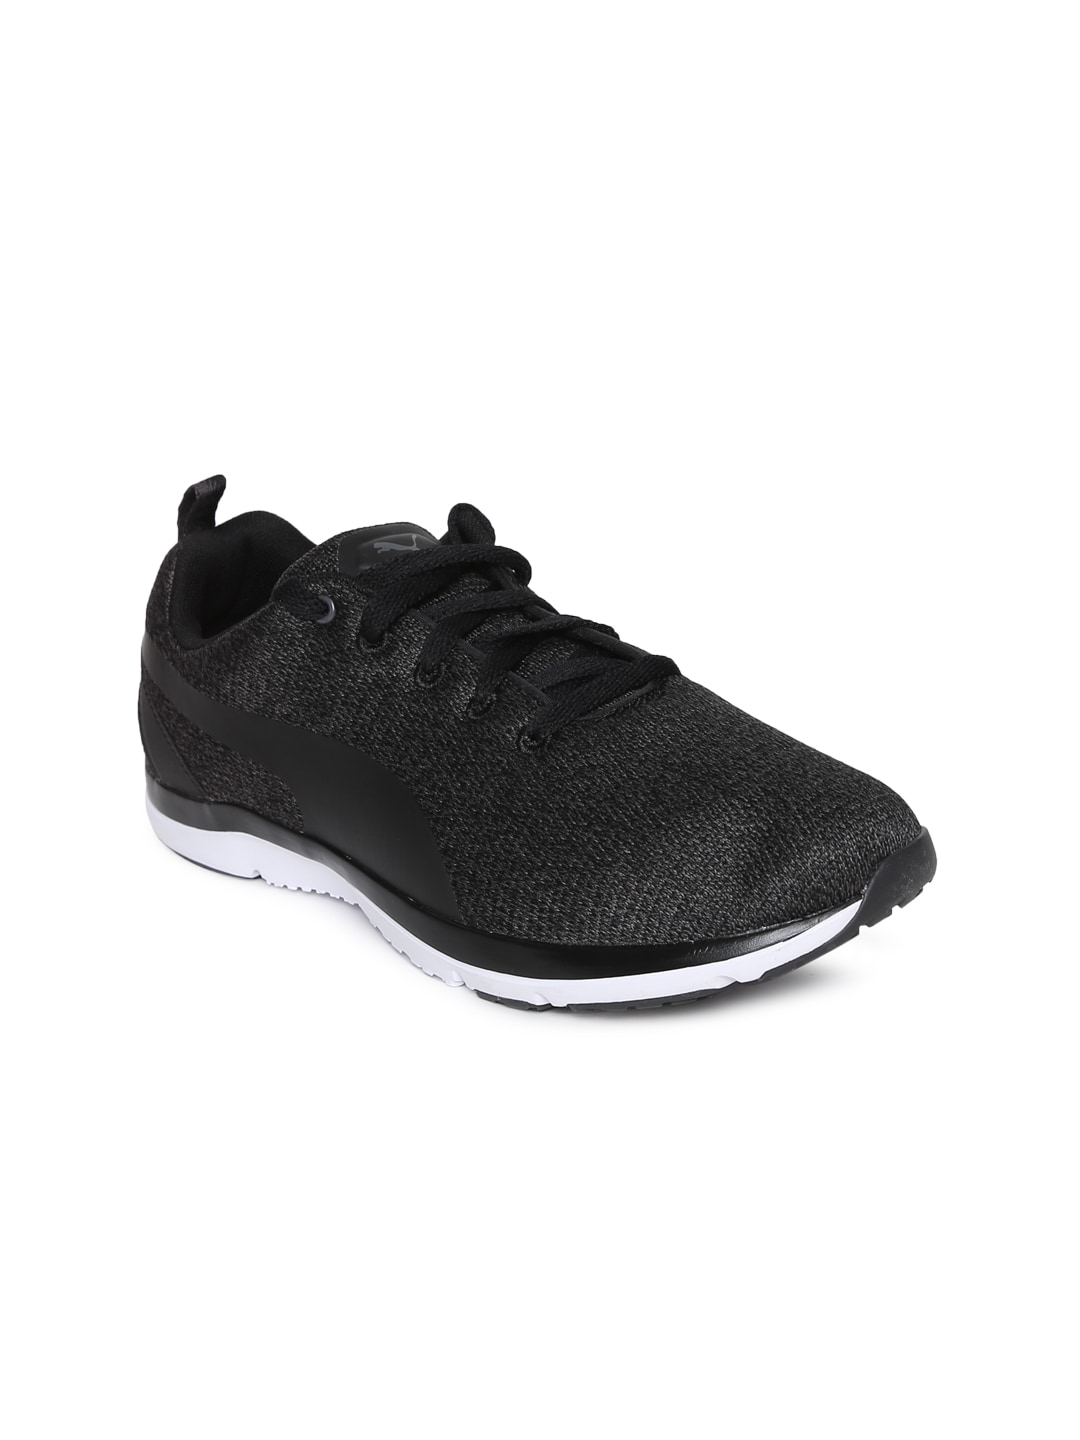 2225d1f0e76e Puma Training Shoes - Buy Puma Training Shoes online in India